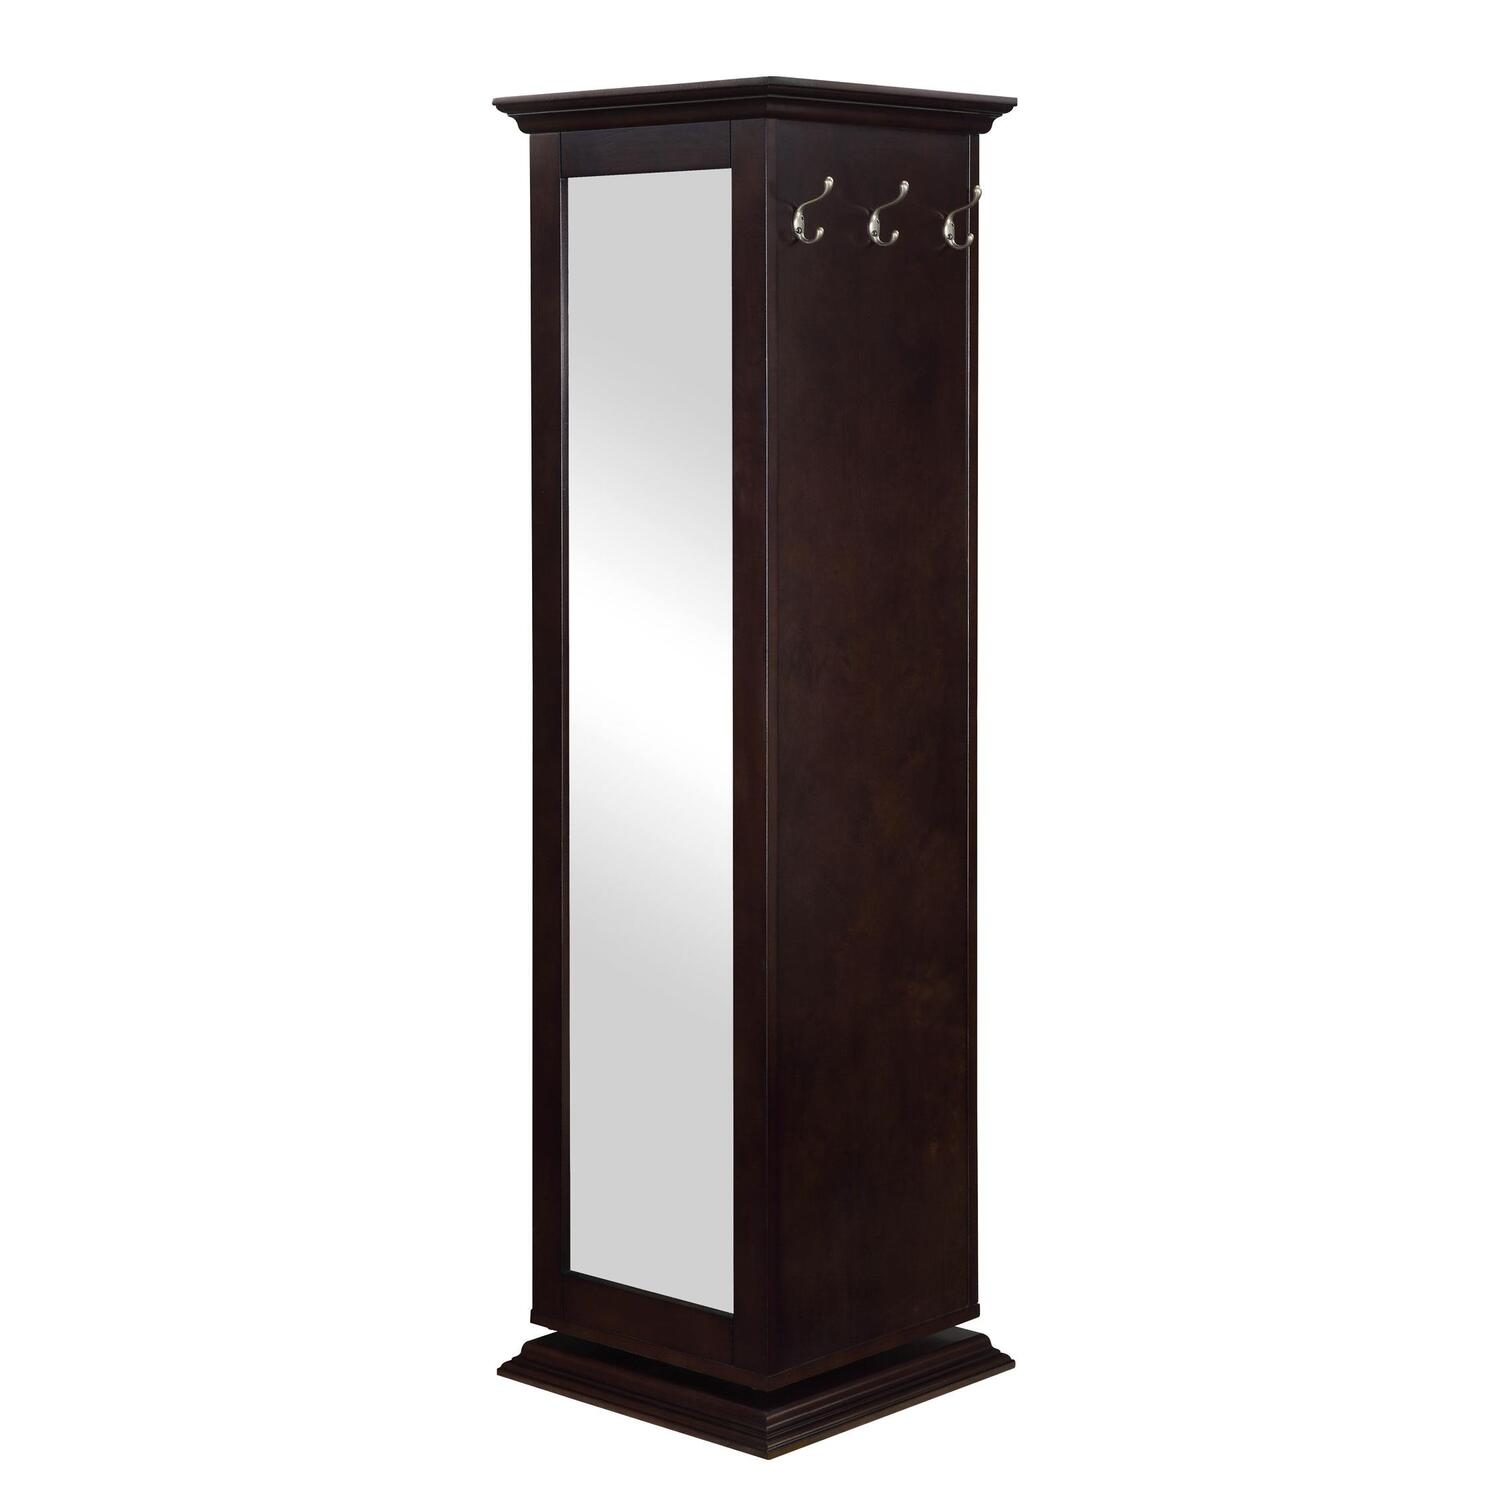 Hollywood Home Swivel Cabinet by OJ Commerce $301.00